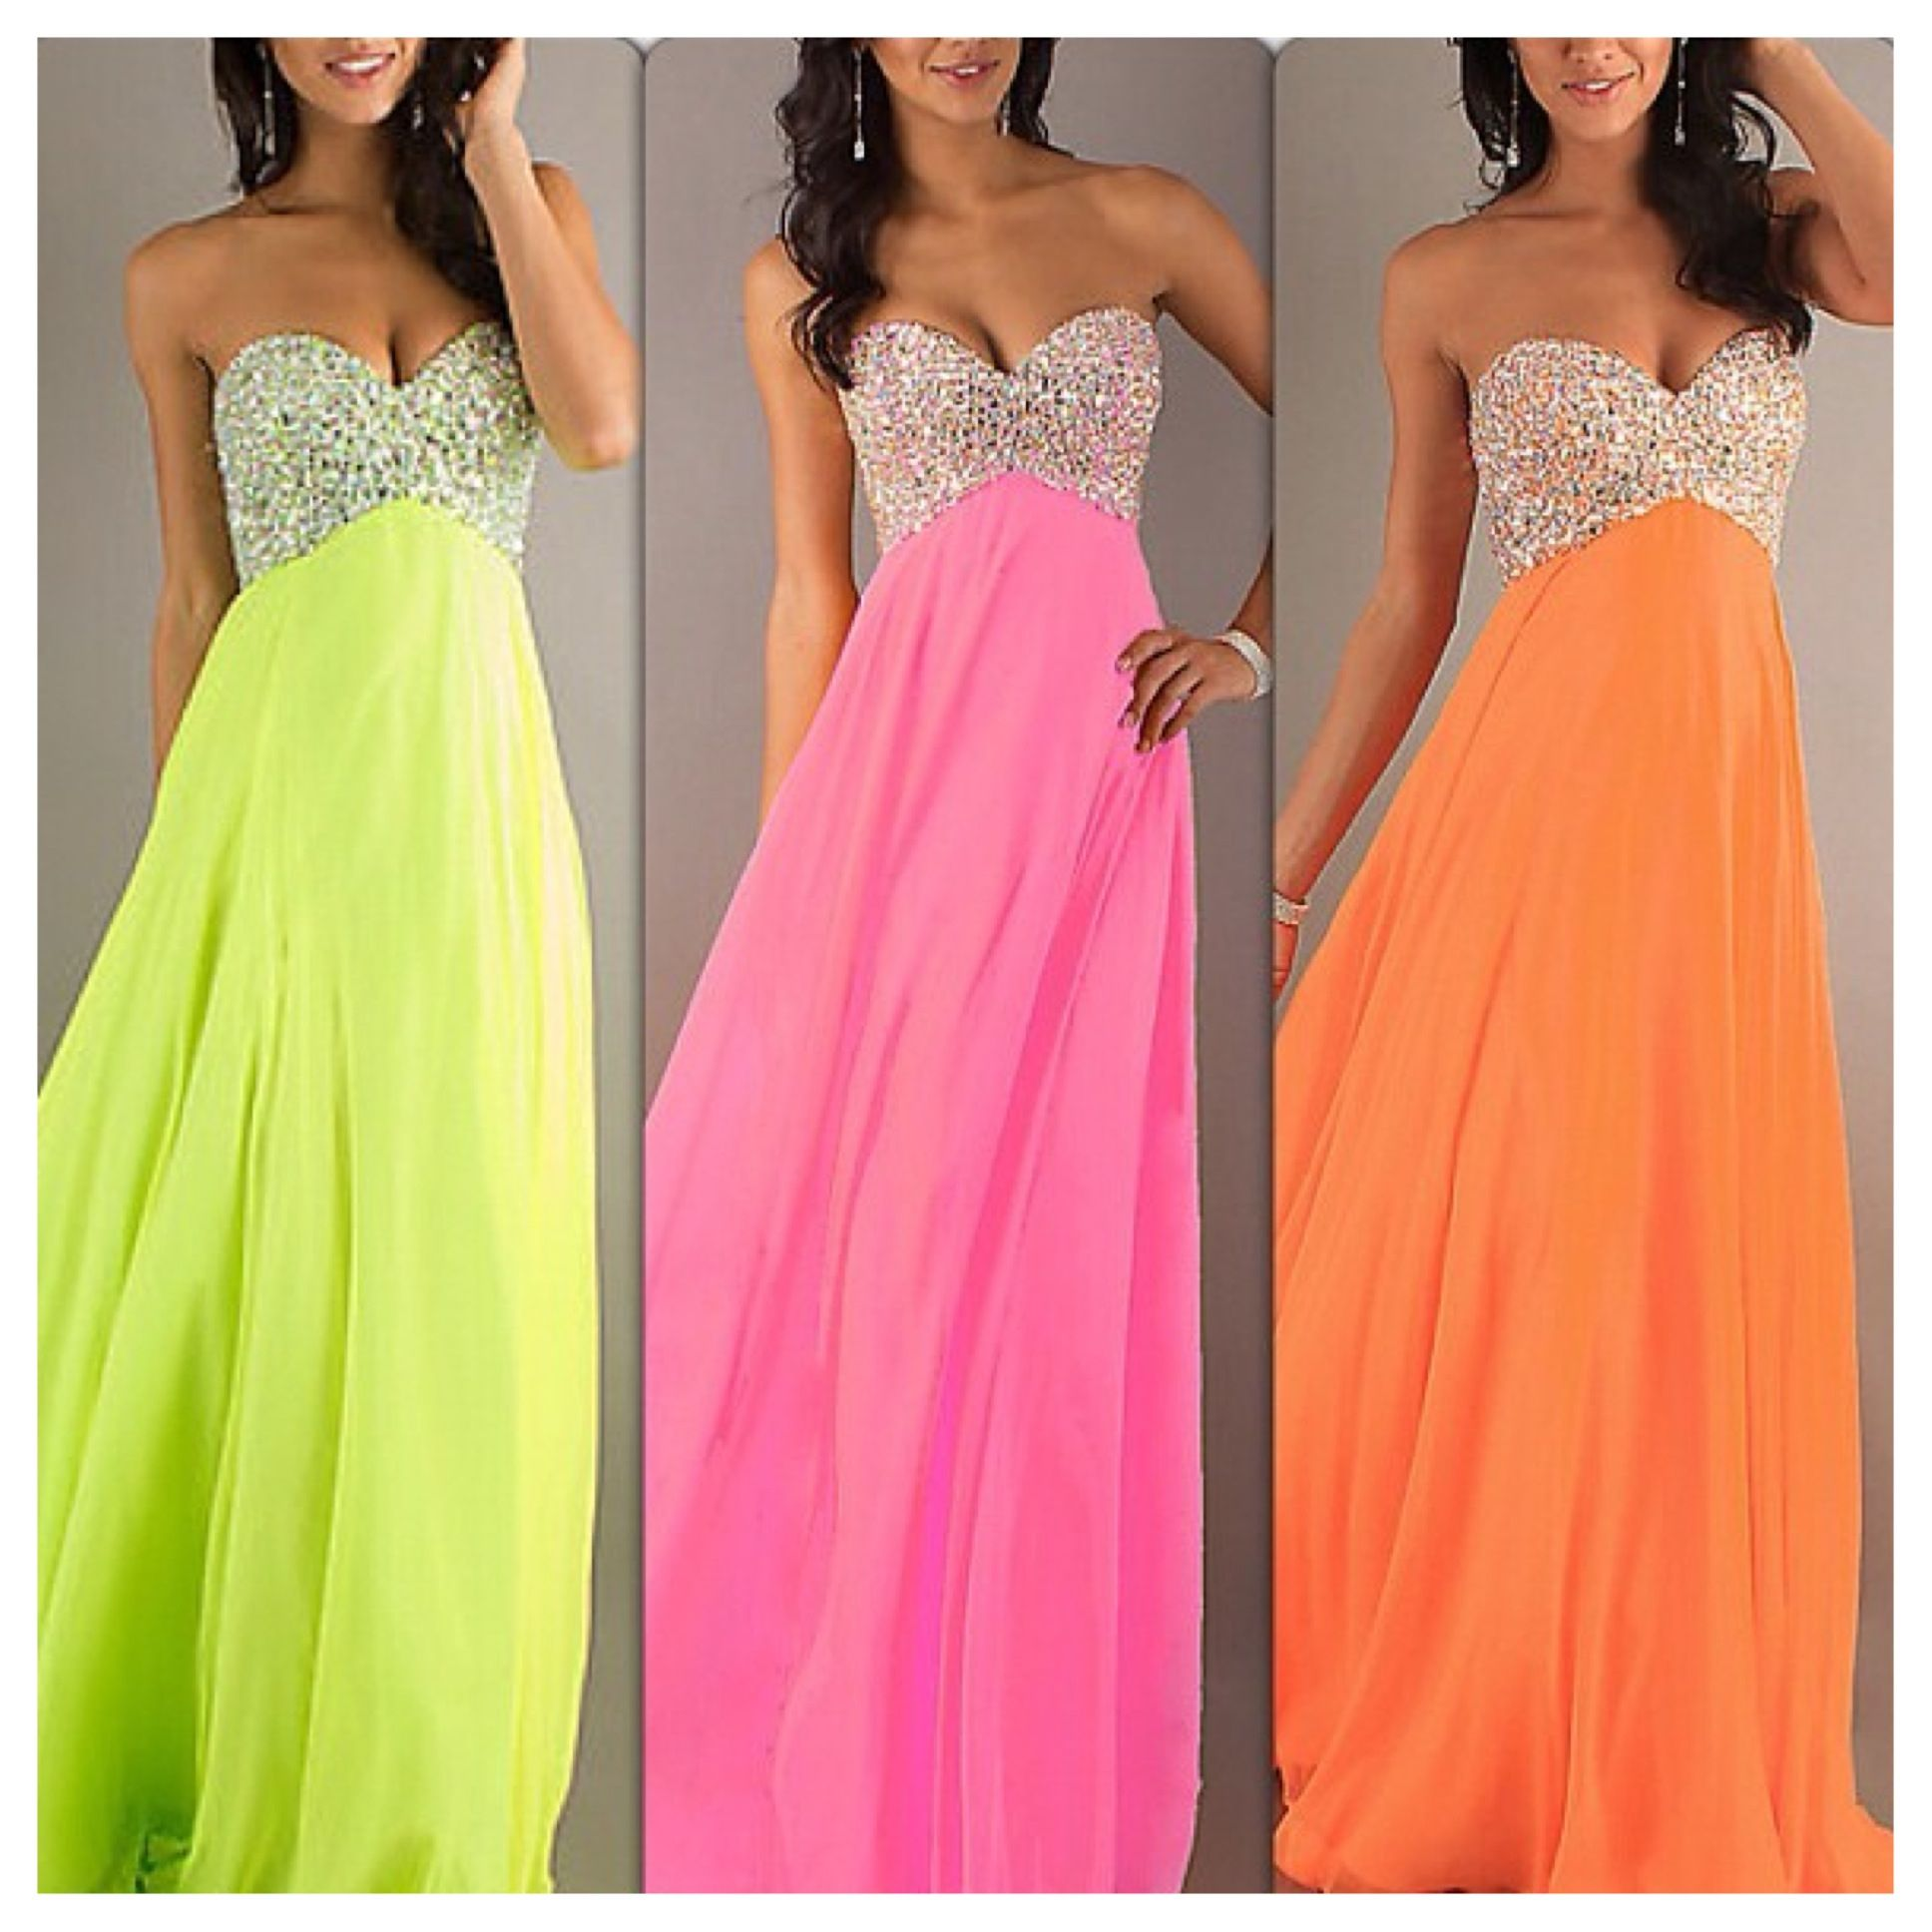 Green pink orange fashion pinterest dream prom prom and dress